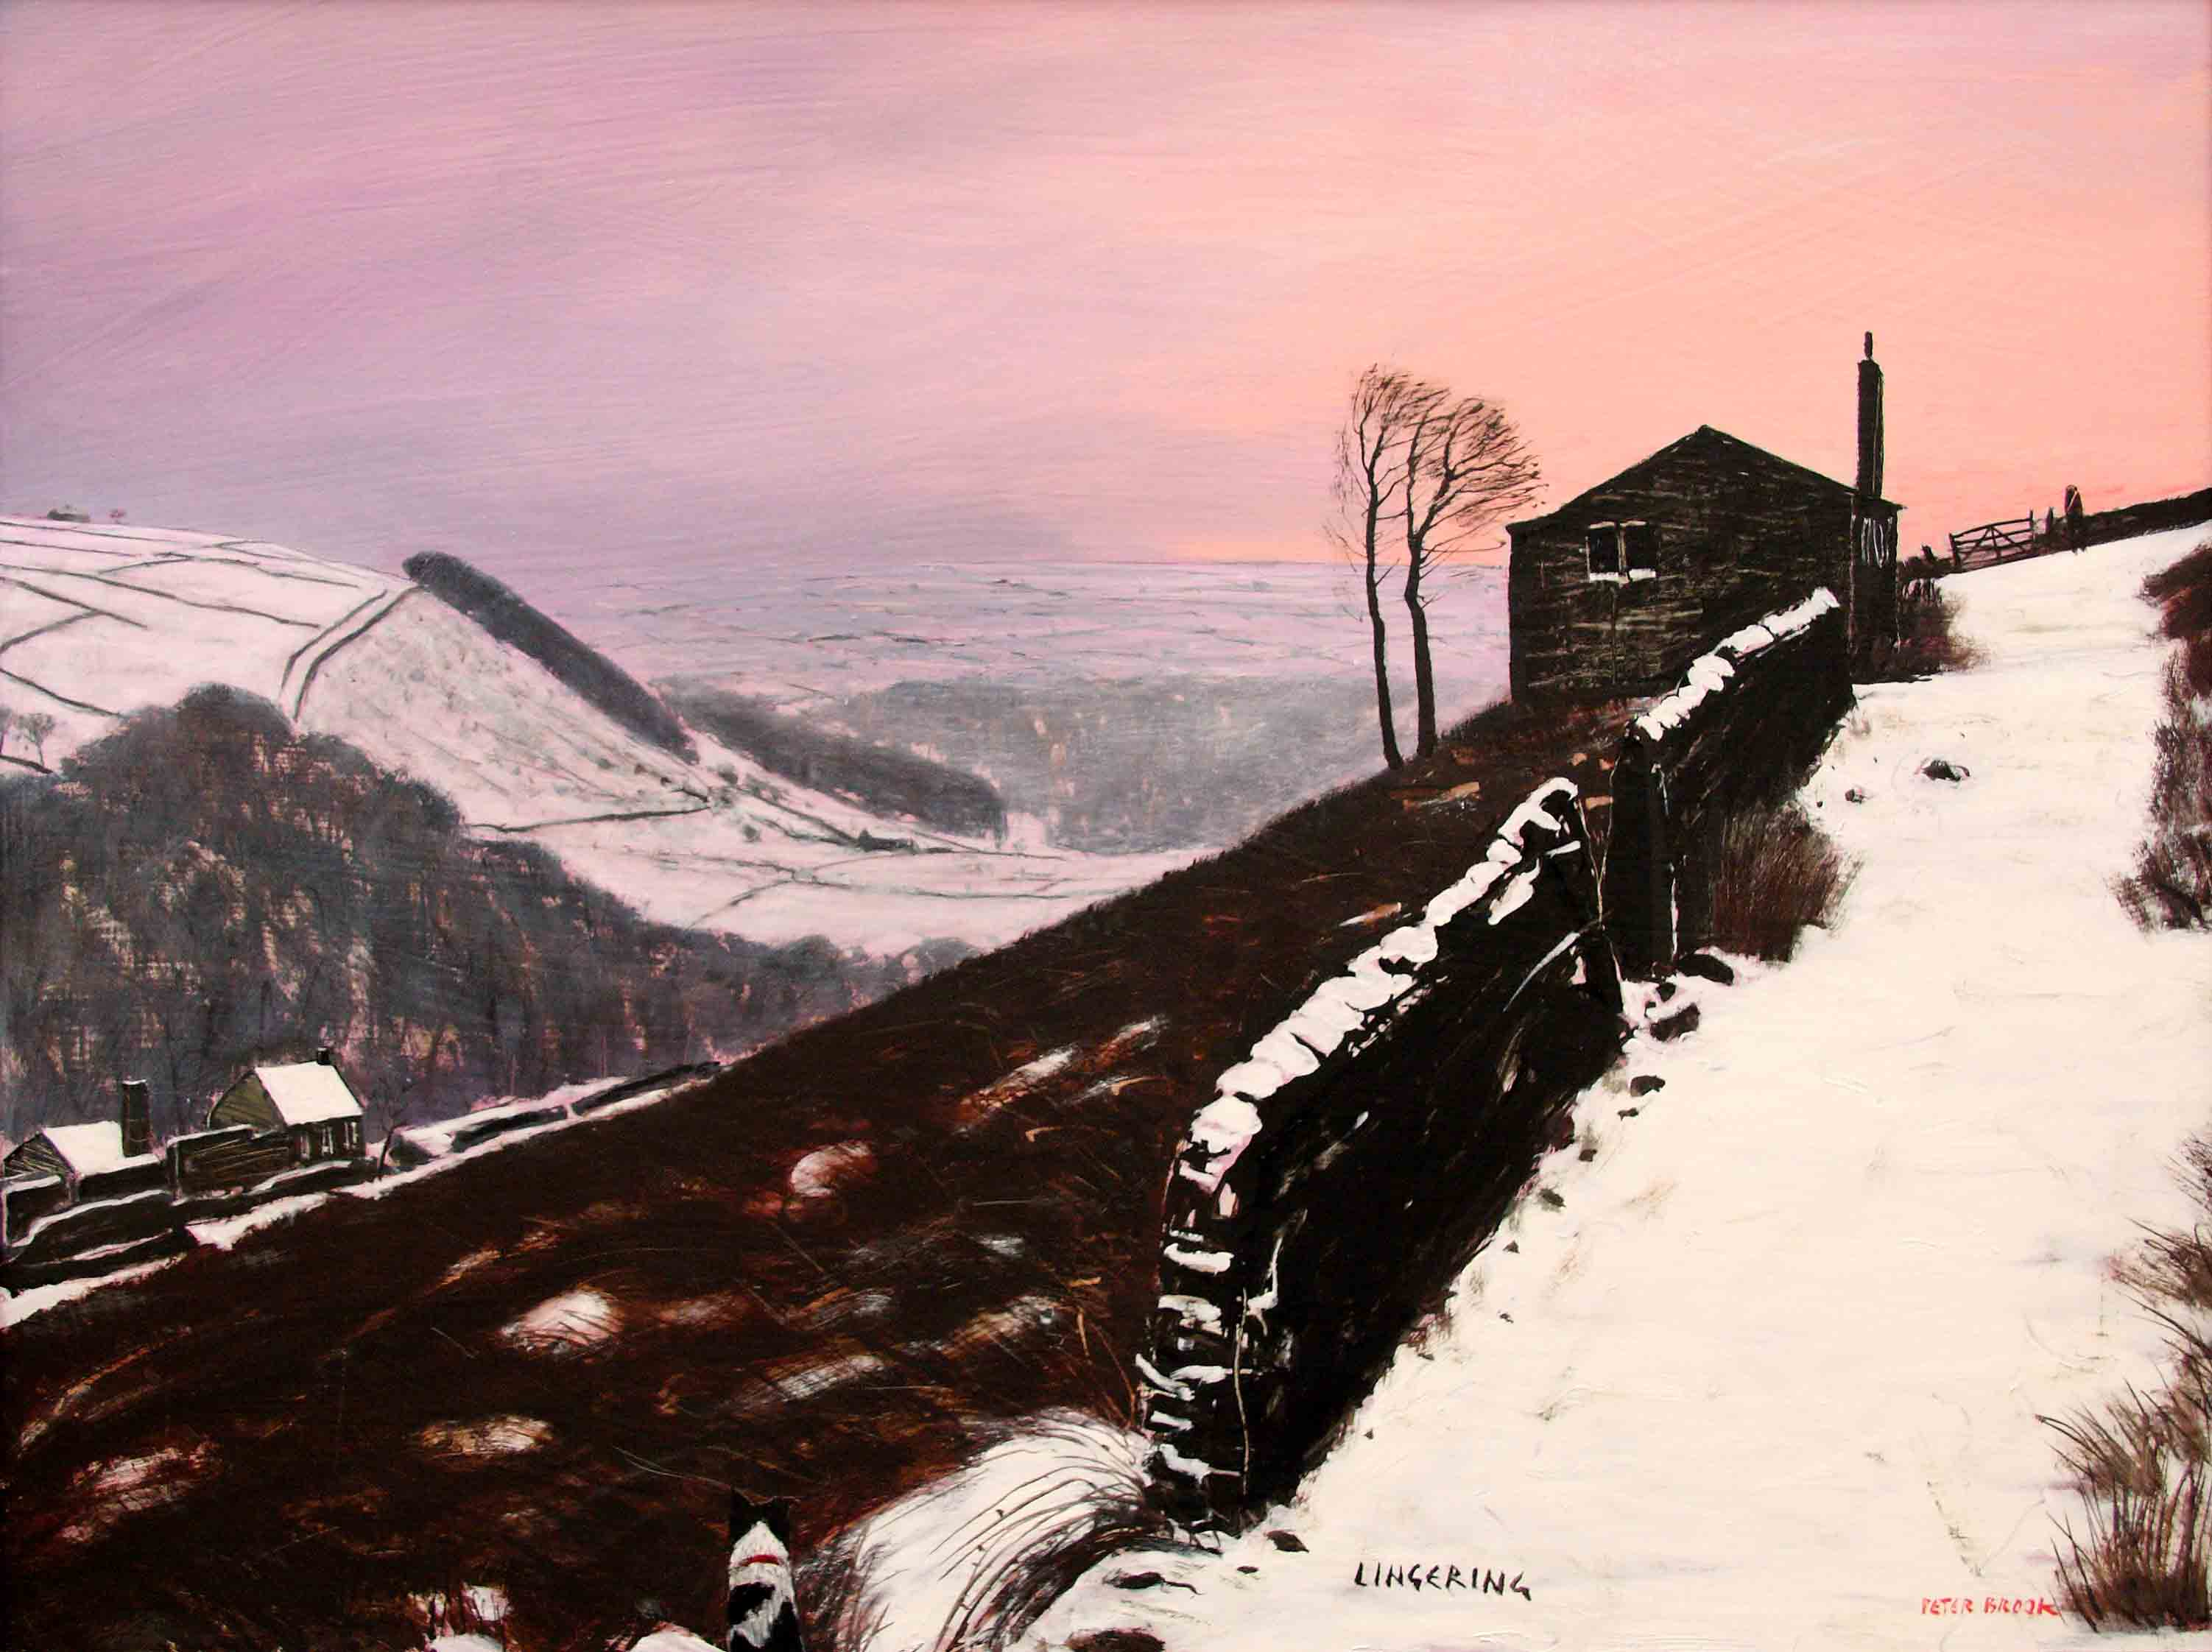 Lingering by Peter Brook